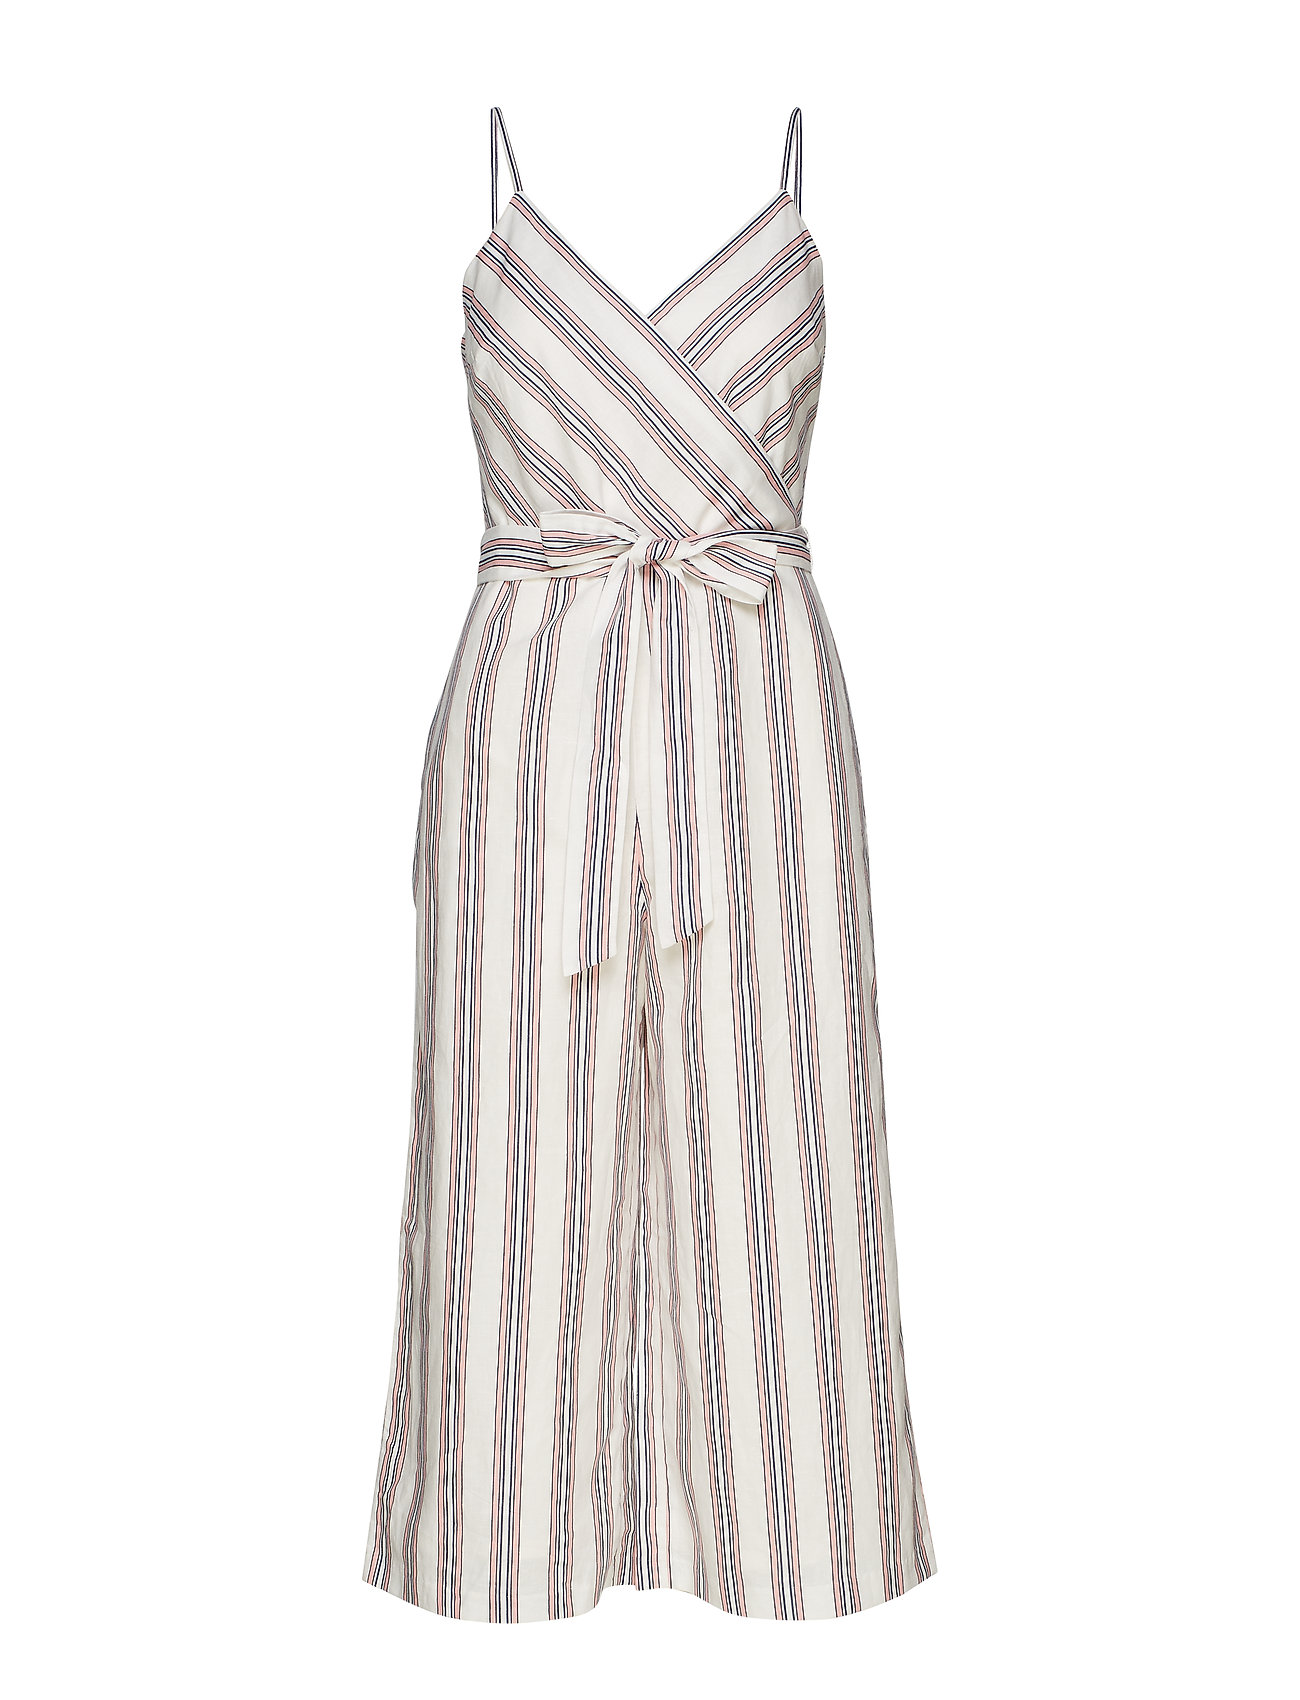 Banana Republic SL WRAP TOP CROPPED JUMPSUIT STRIPE - WHITE WITH RED STRIPE